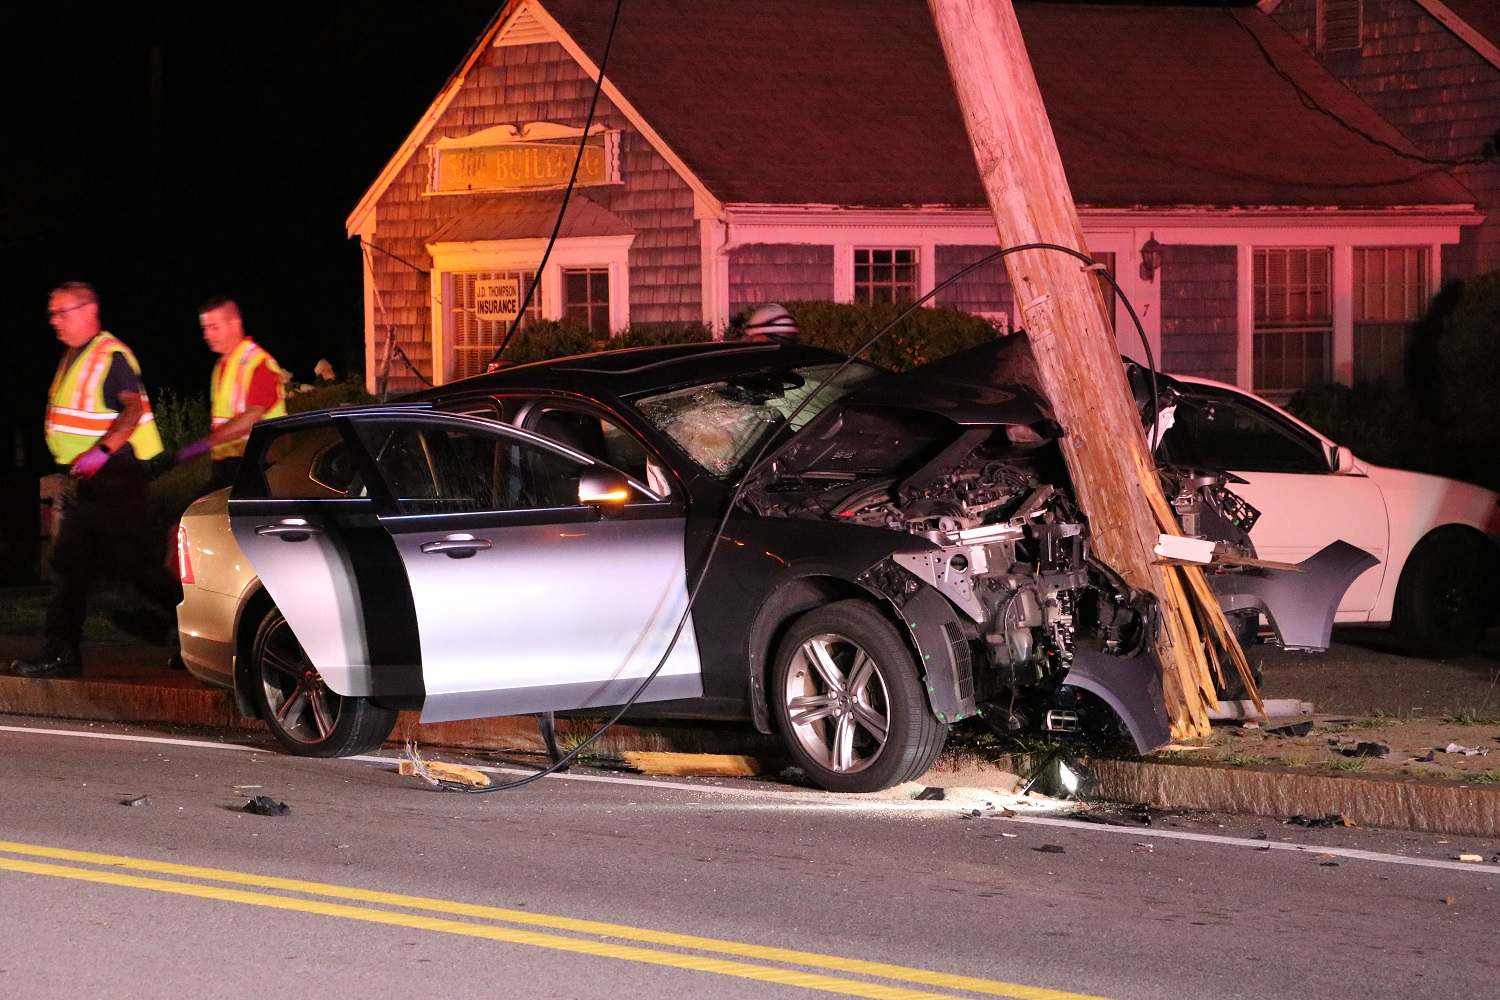 YARMOUTH CRASH: Route 28 closed after vehicle destroys utility pole